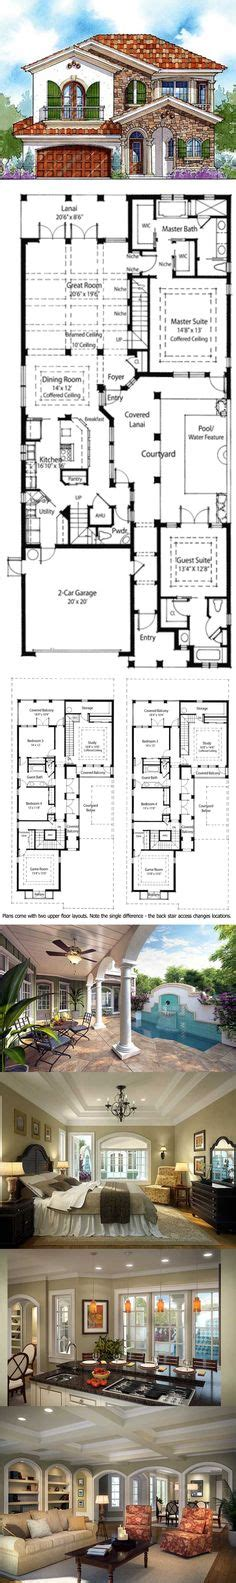 narrow lot house plans with courtyard plan 57245ha narrow lot courtyard home plan house plans home and courtyard house